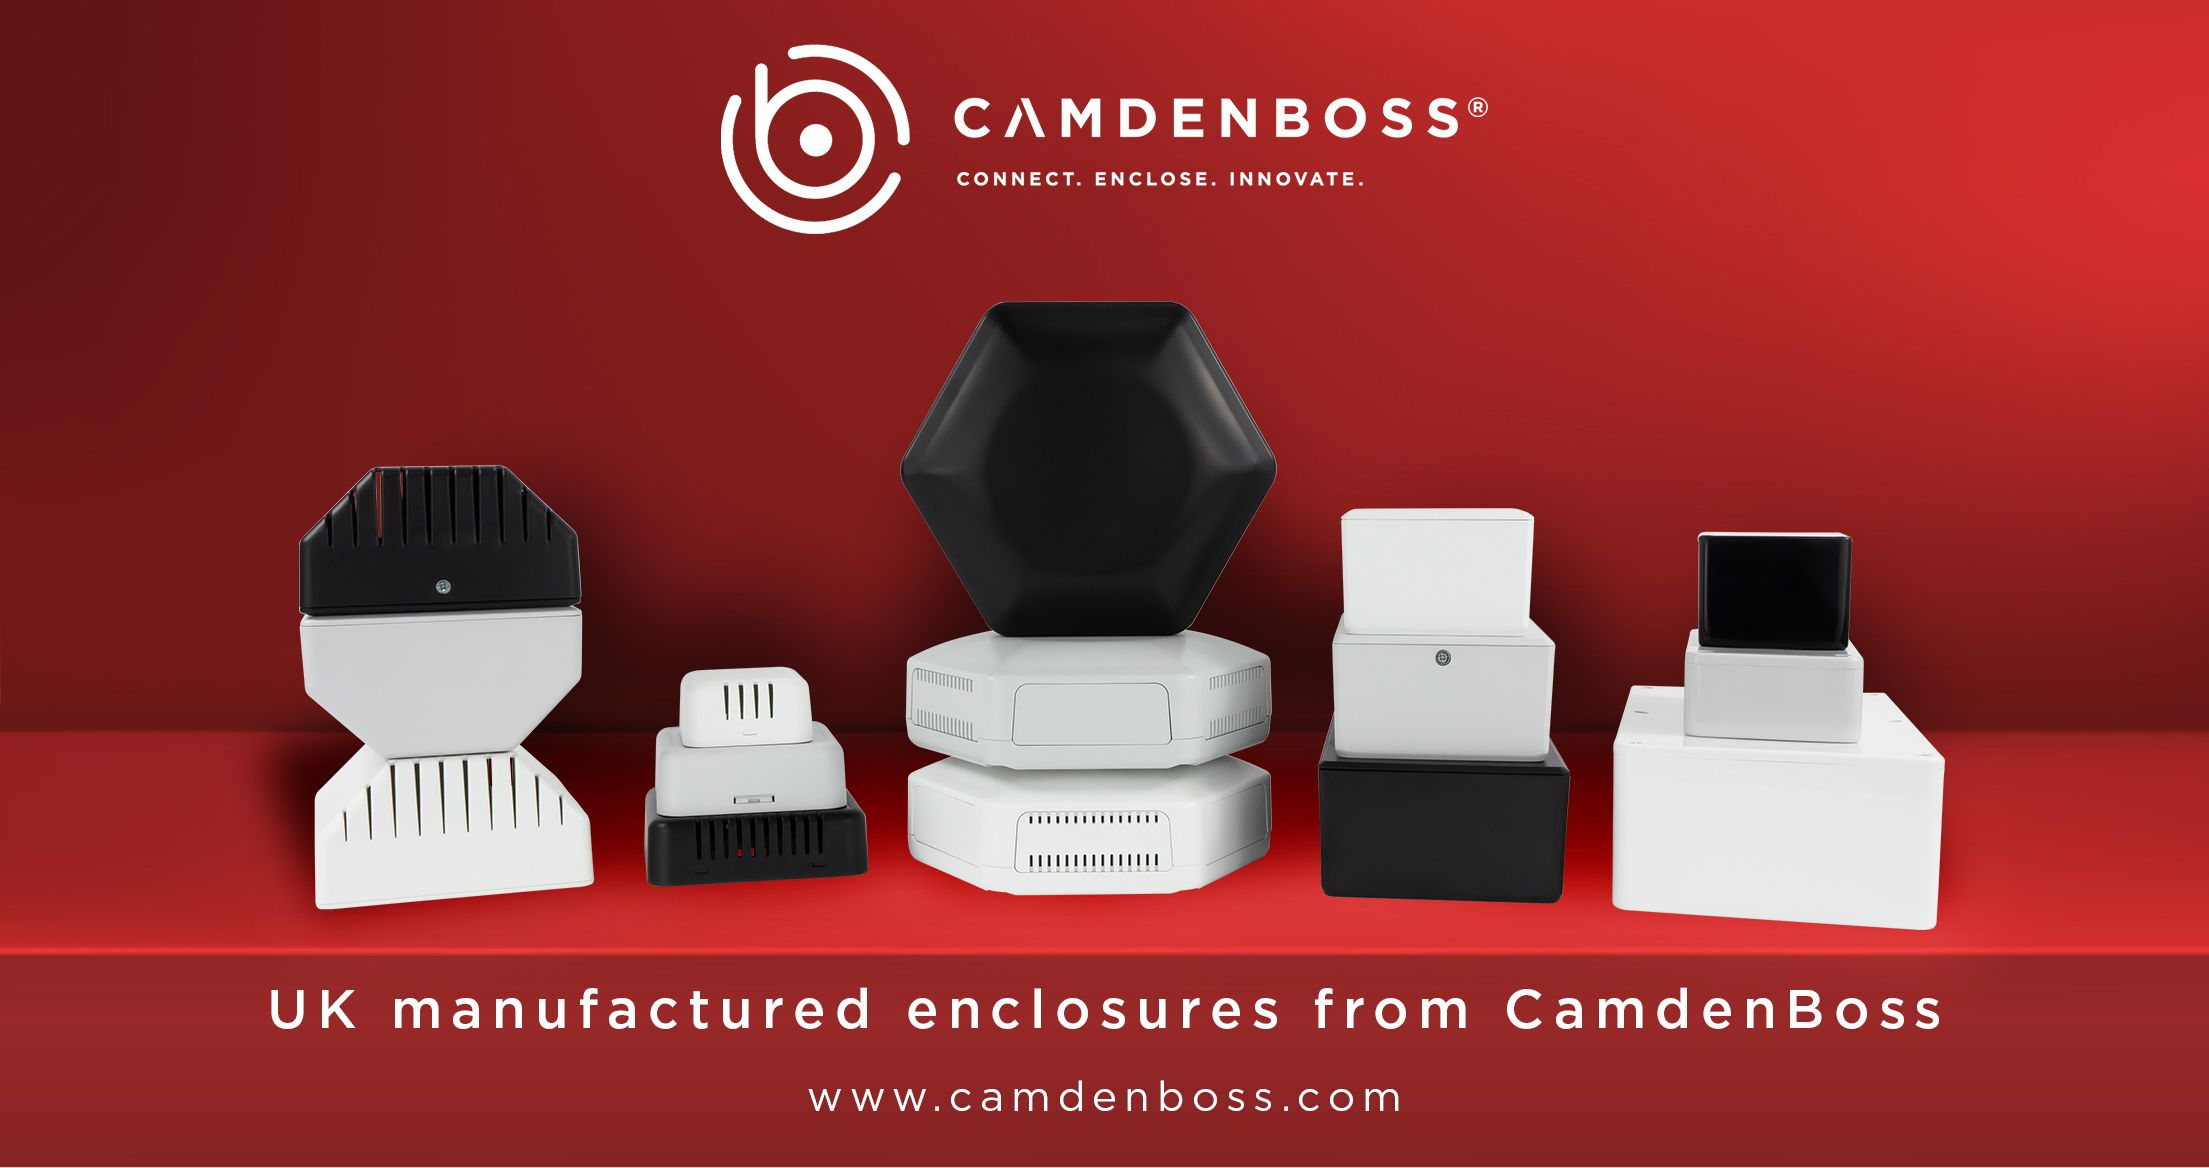 The latest electronic and electrical enclosure solutions from CamdenBoss